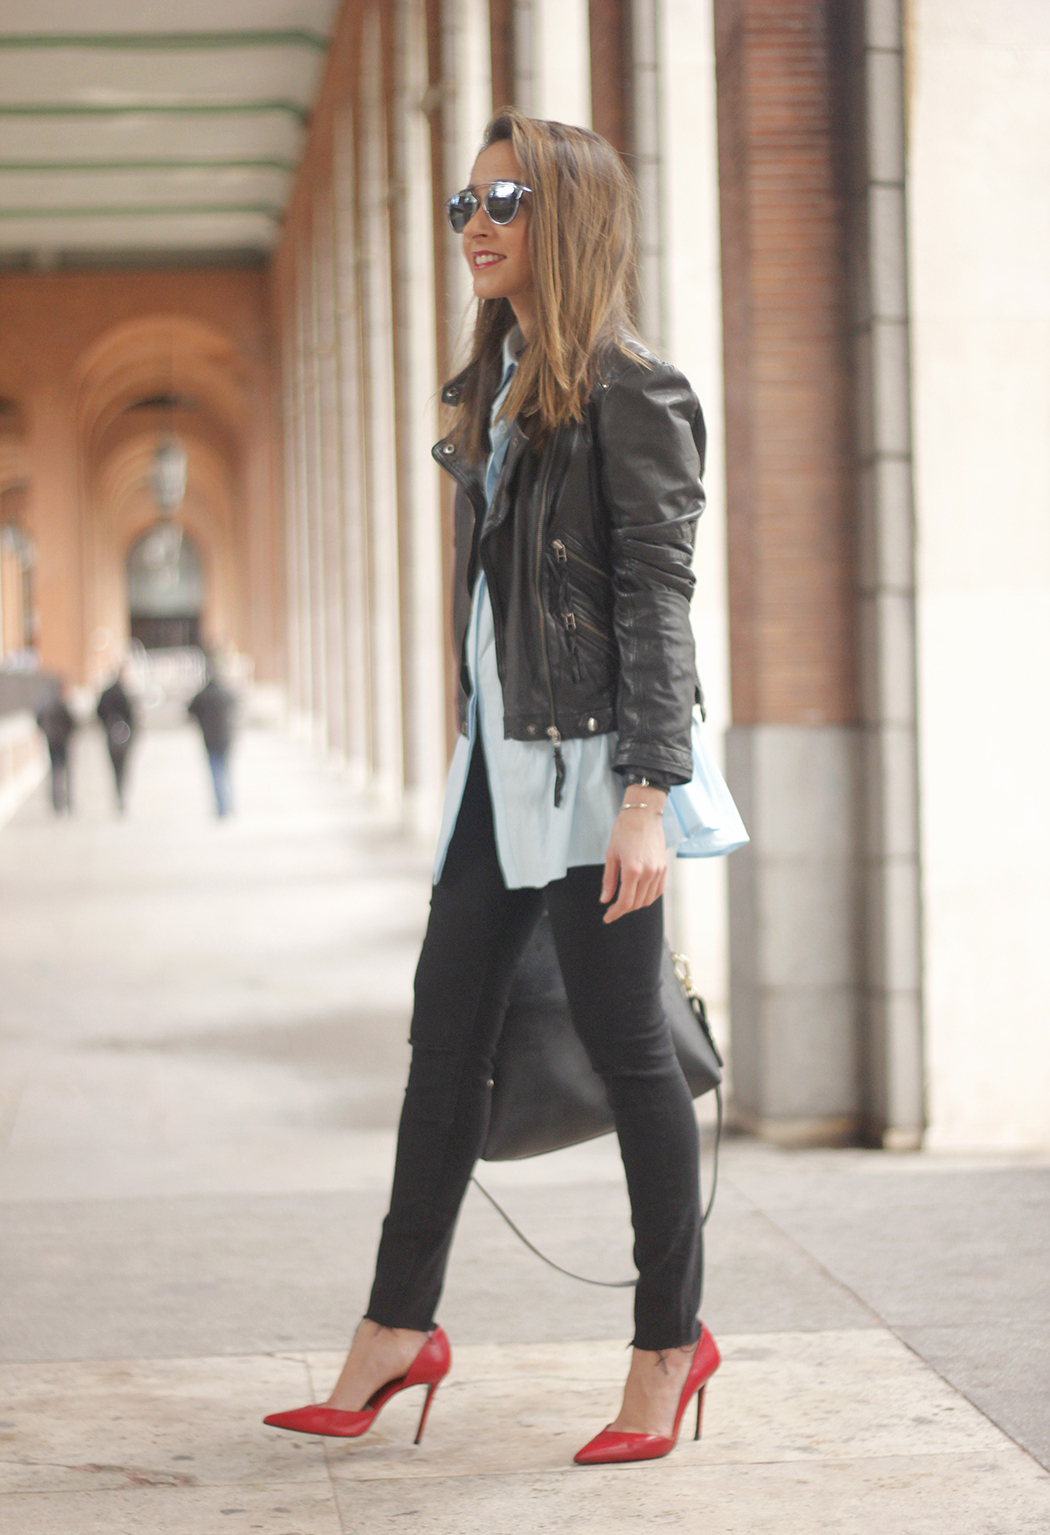 black leather biker black ripped jeans blue shirt outfit streetstyle07